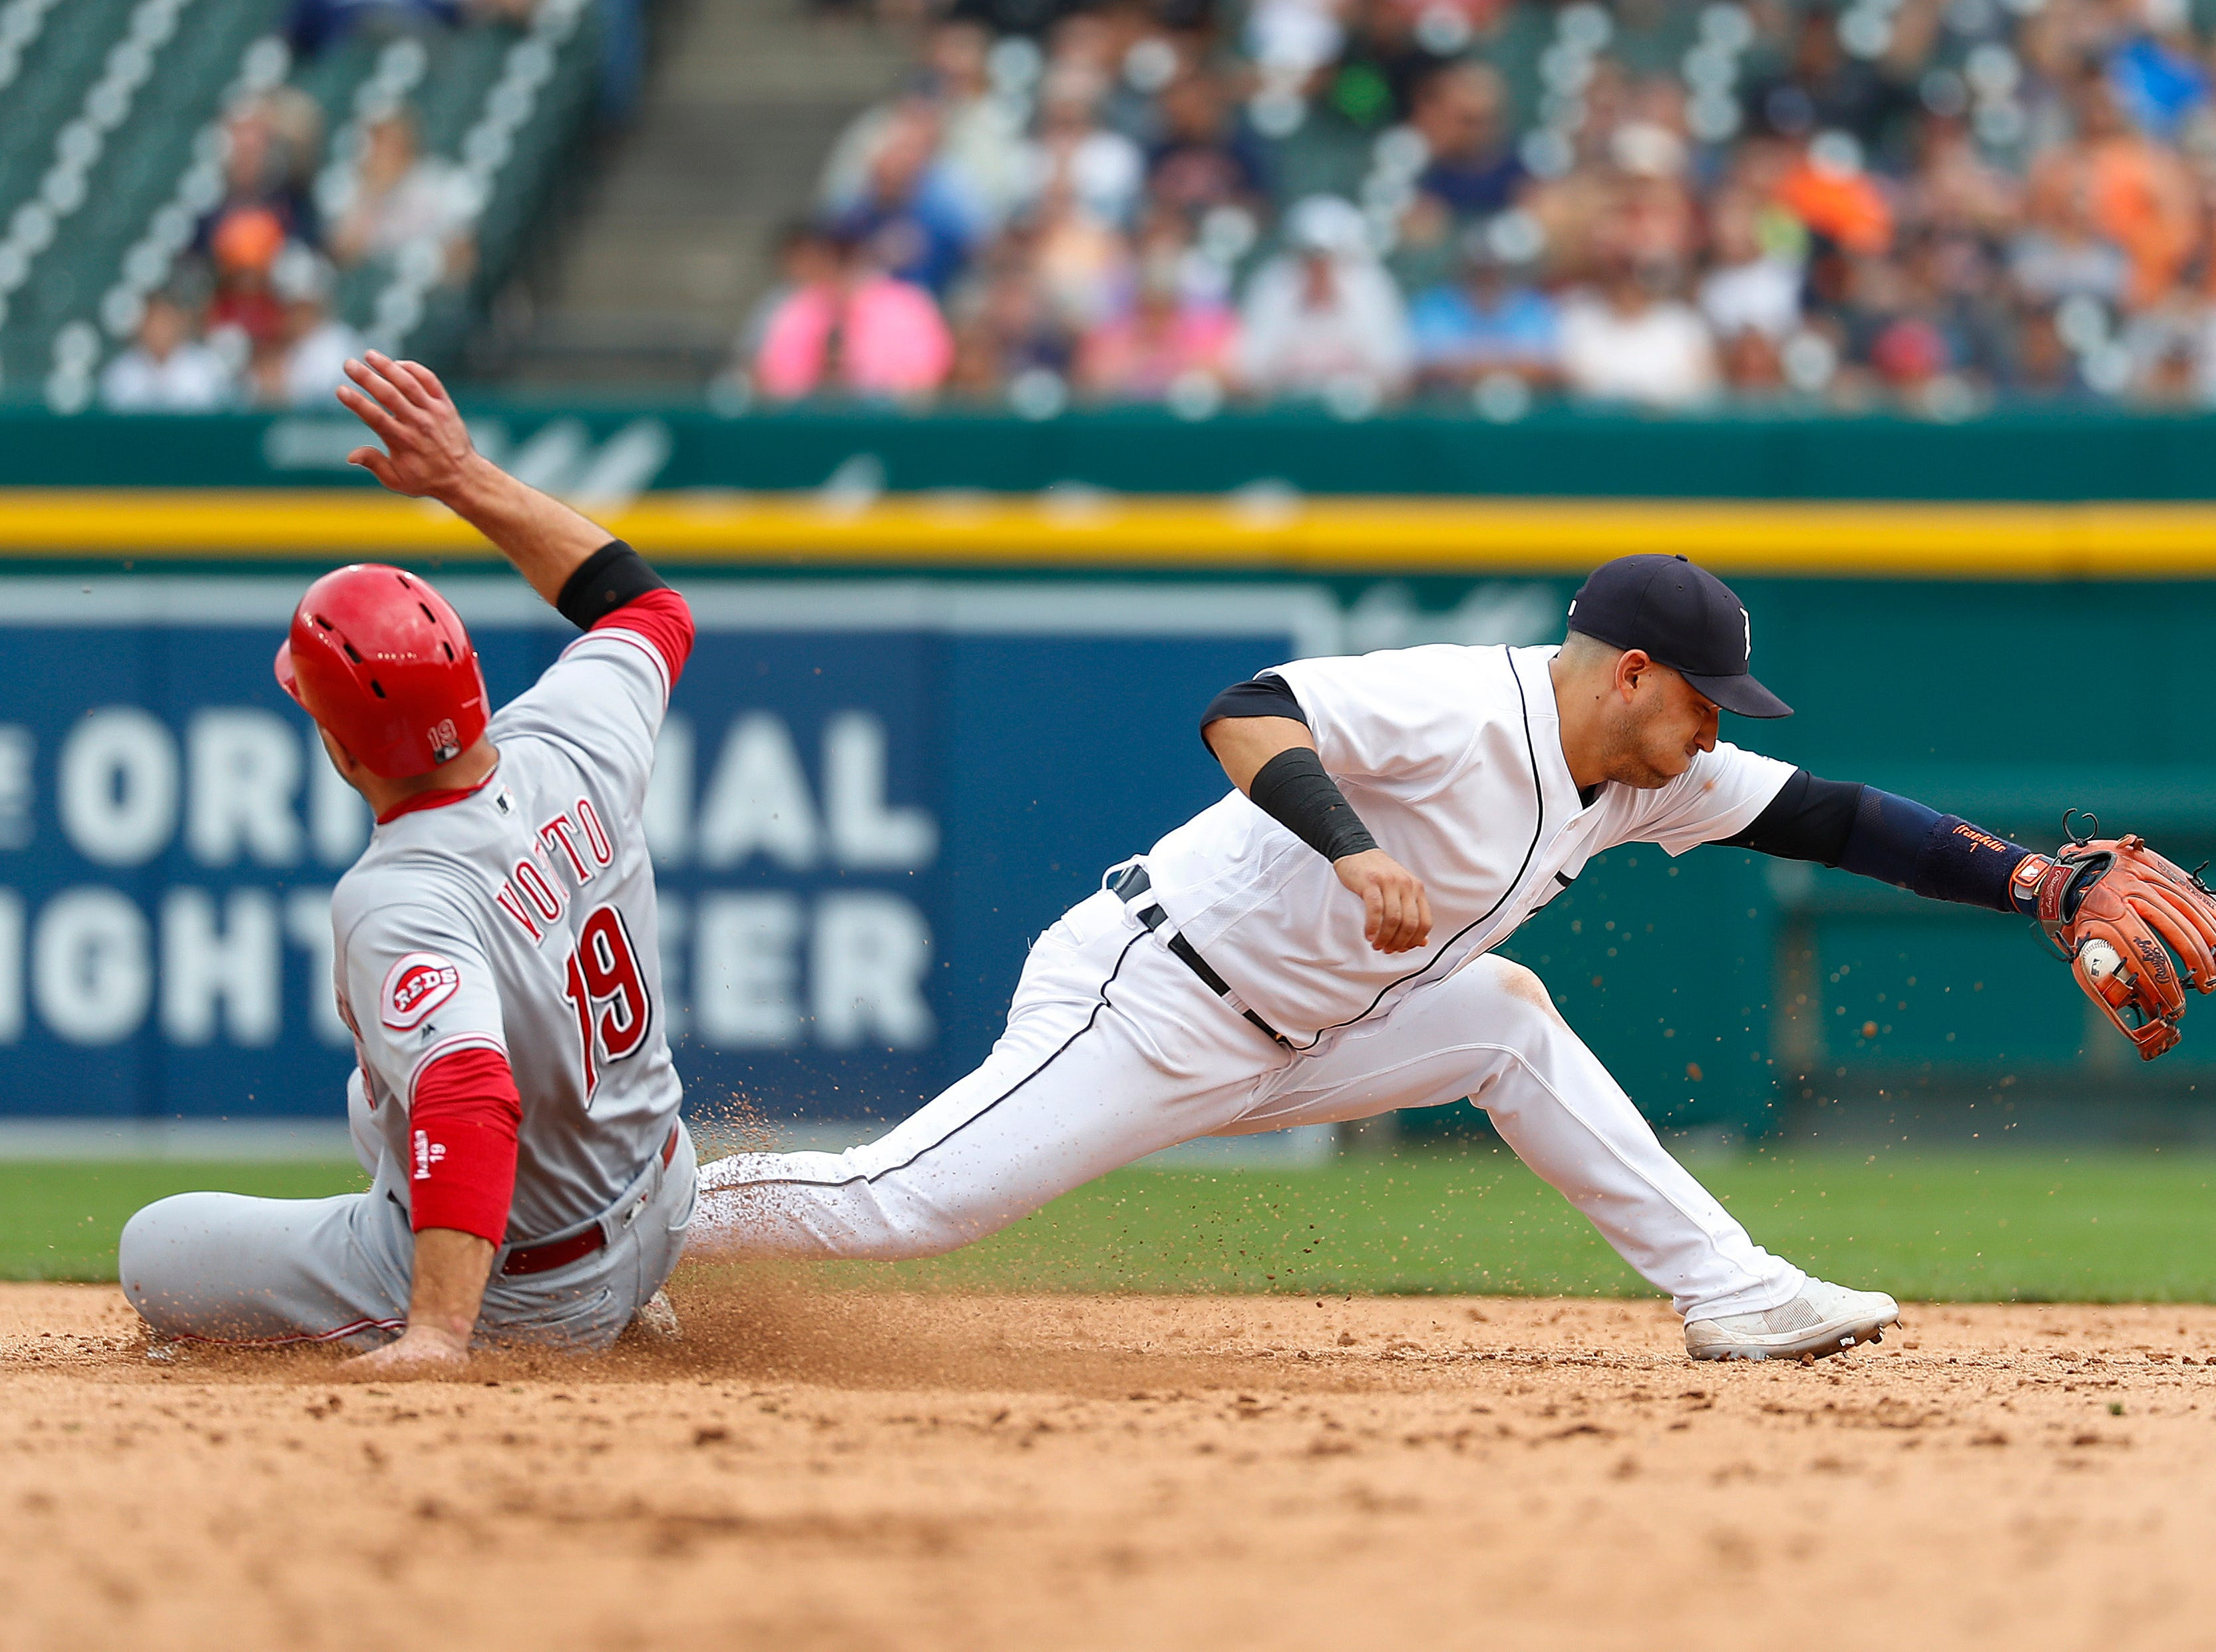 Tigers shortstop Jose Iglesias catches the ball at second base for the out as Cincinnati Reds' Joey Votto slides late in the eighth inning.